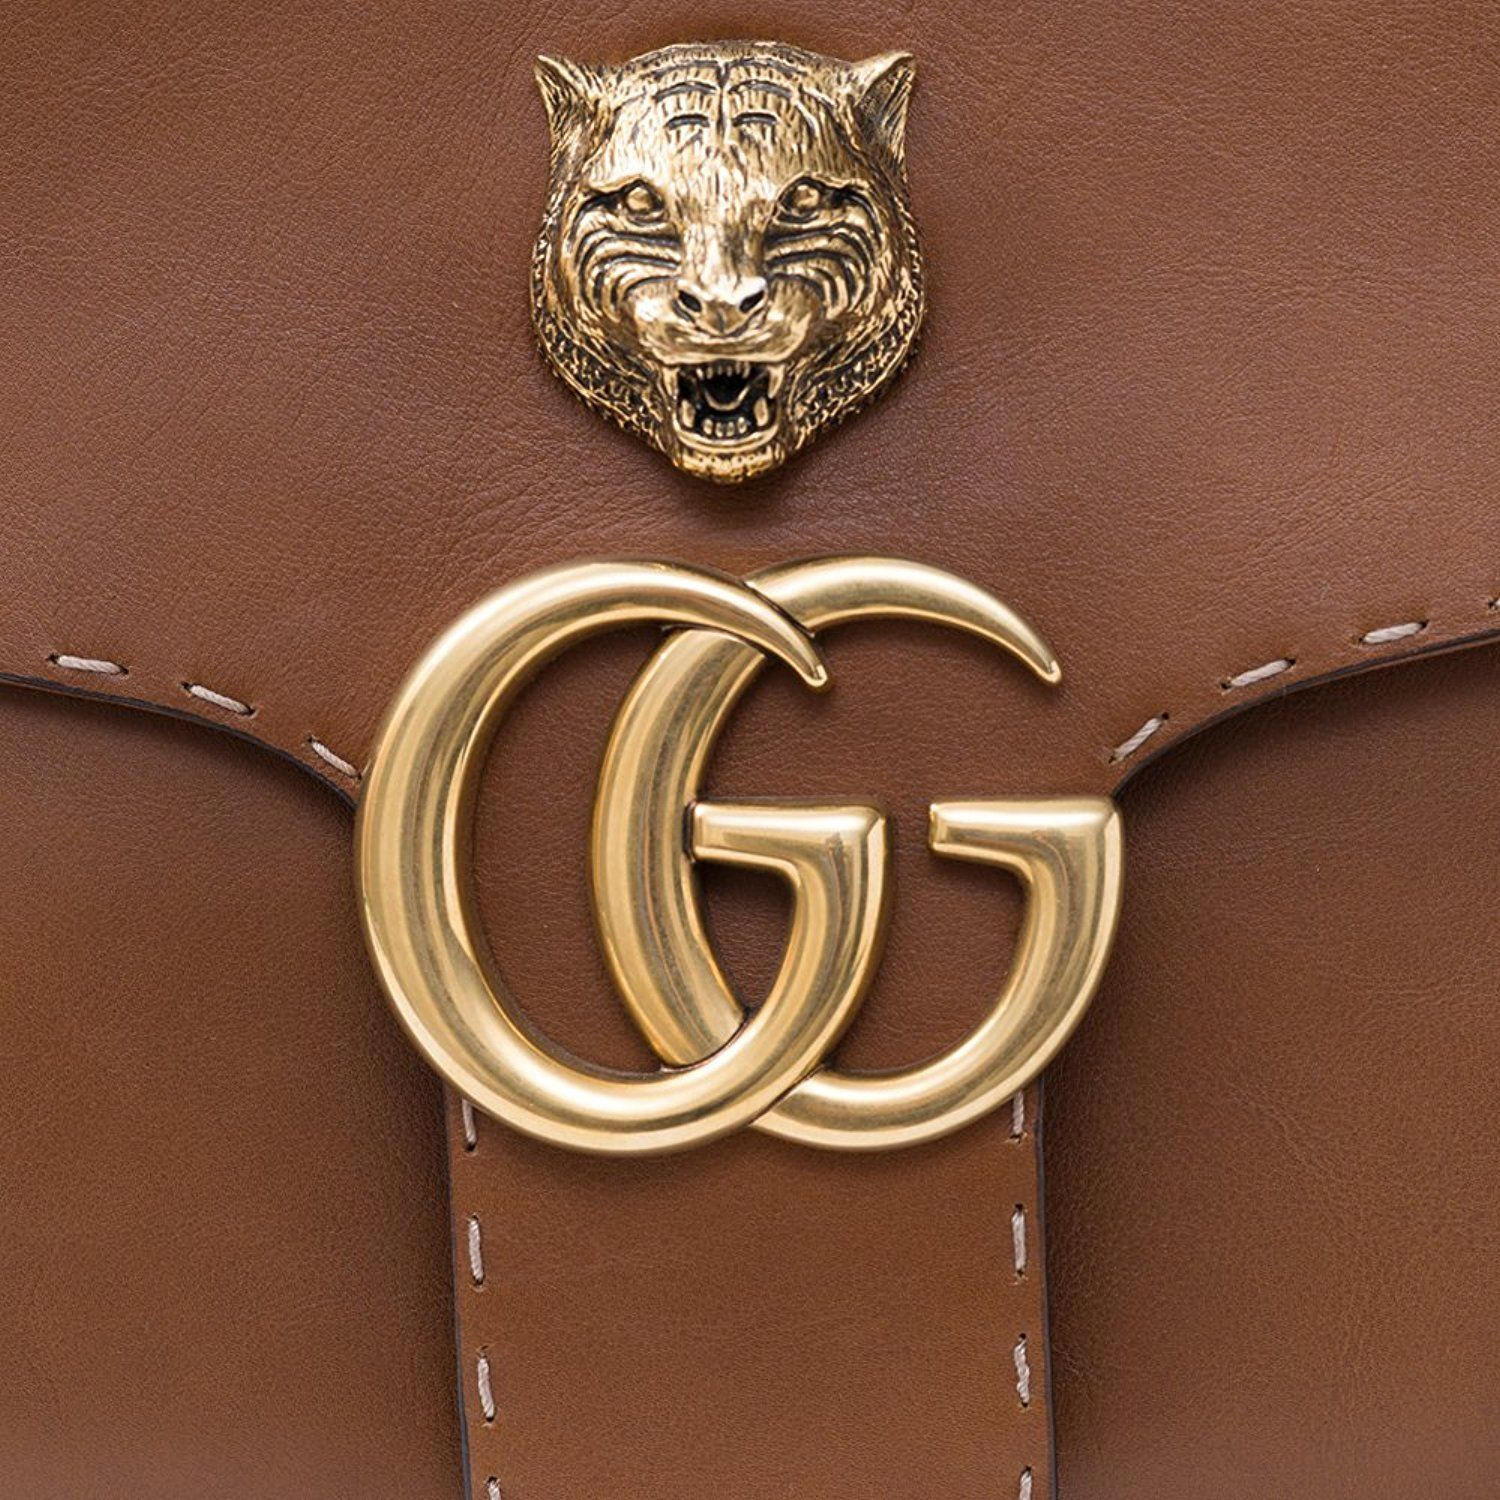 e4d567c069a0 GUCCI GG MARMONT LEATHER SHOULDER BAG Brown Tiger Authentic New - GG Marmont  tote bag and